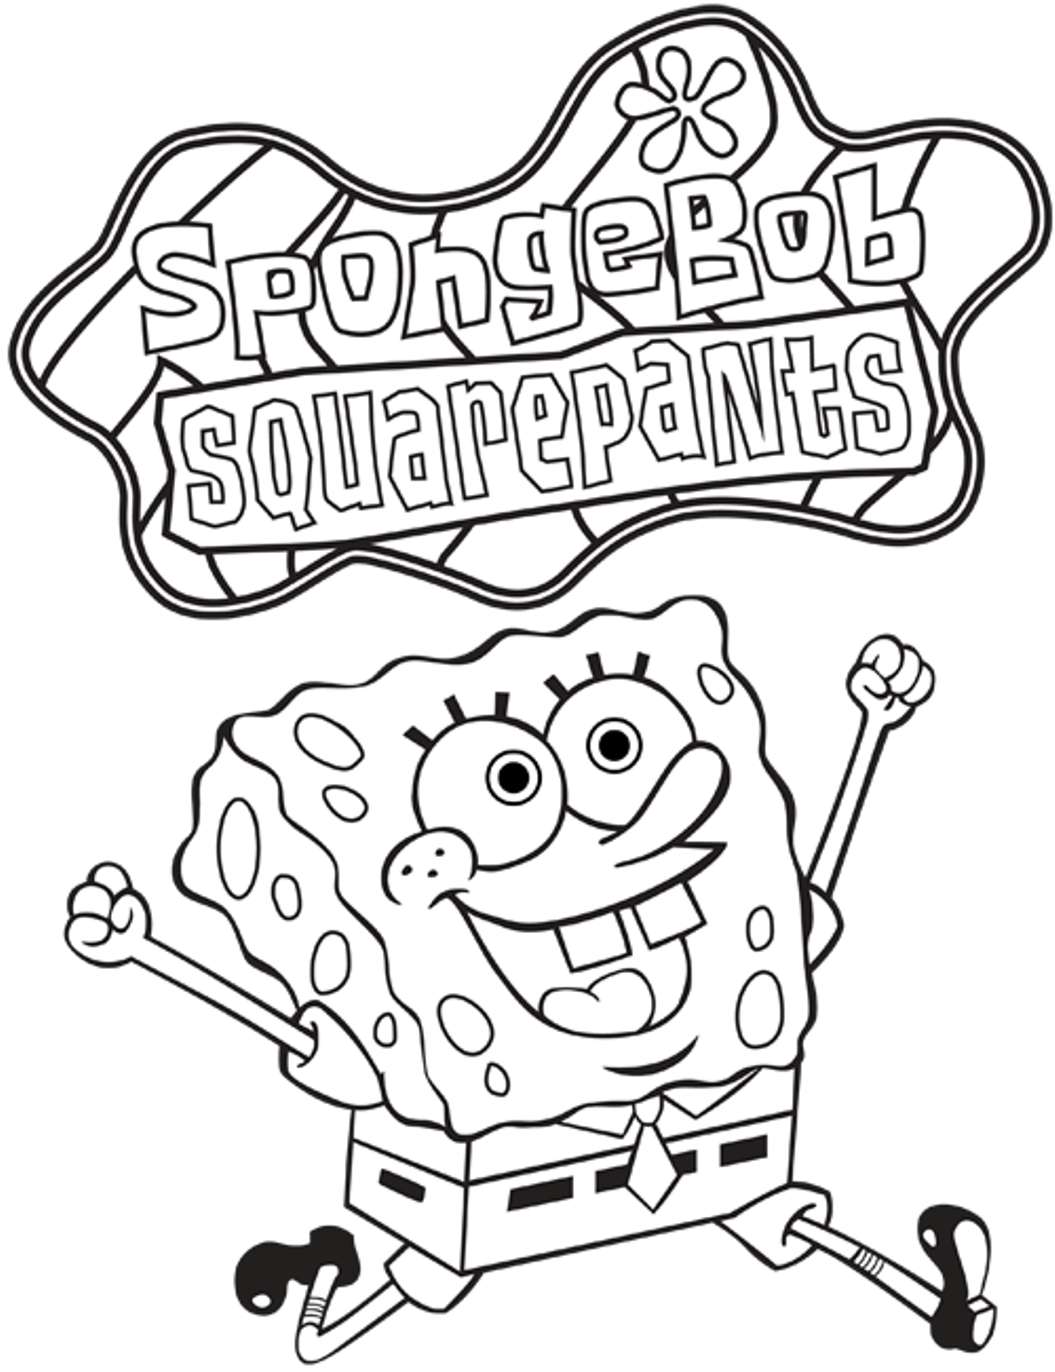 nickelodeon coloring book pages - photo#16